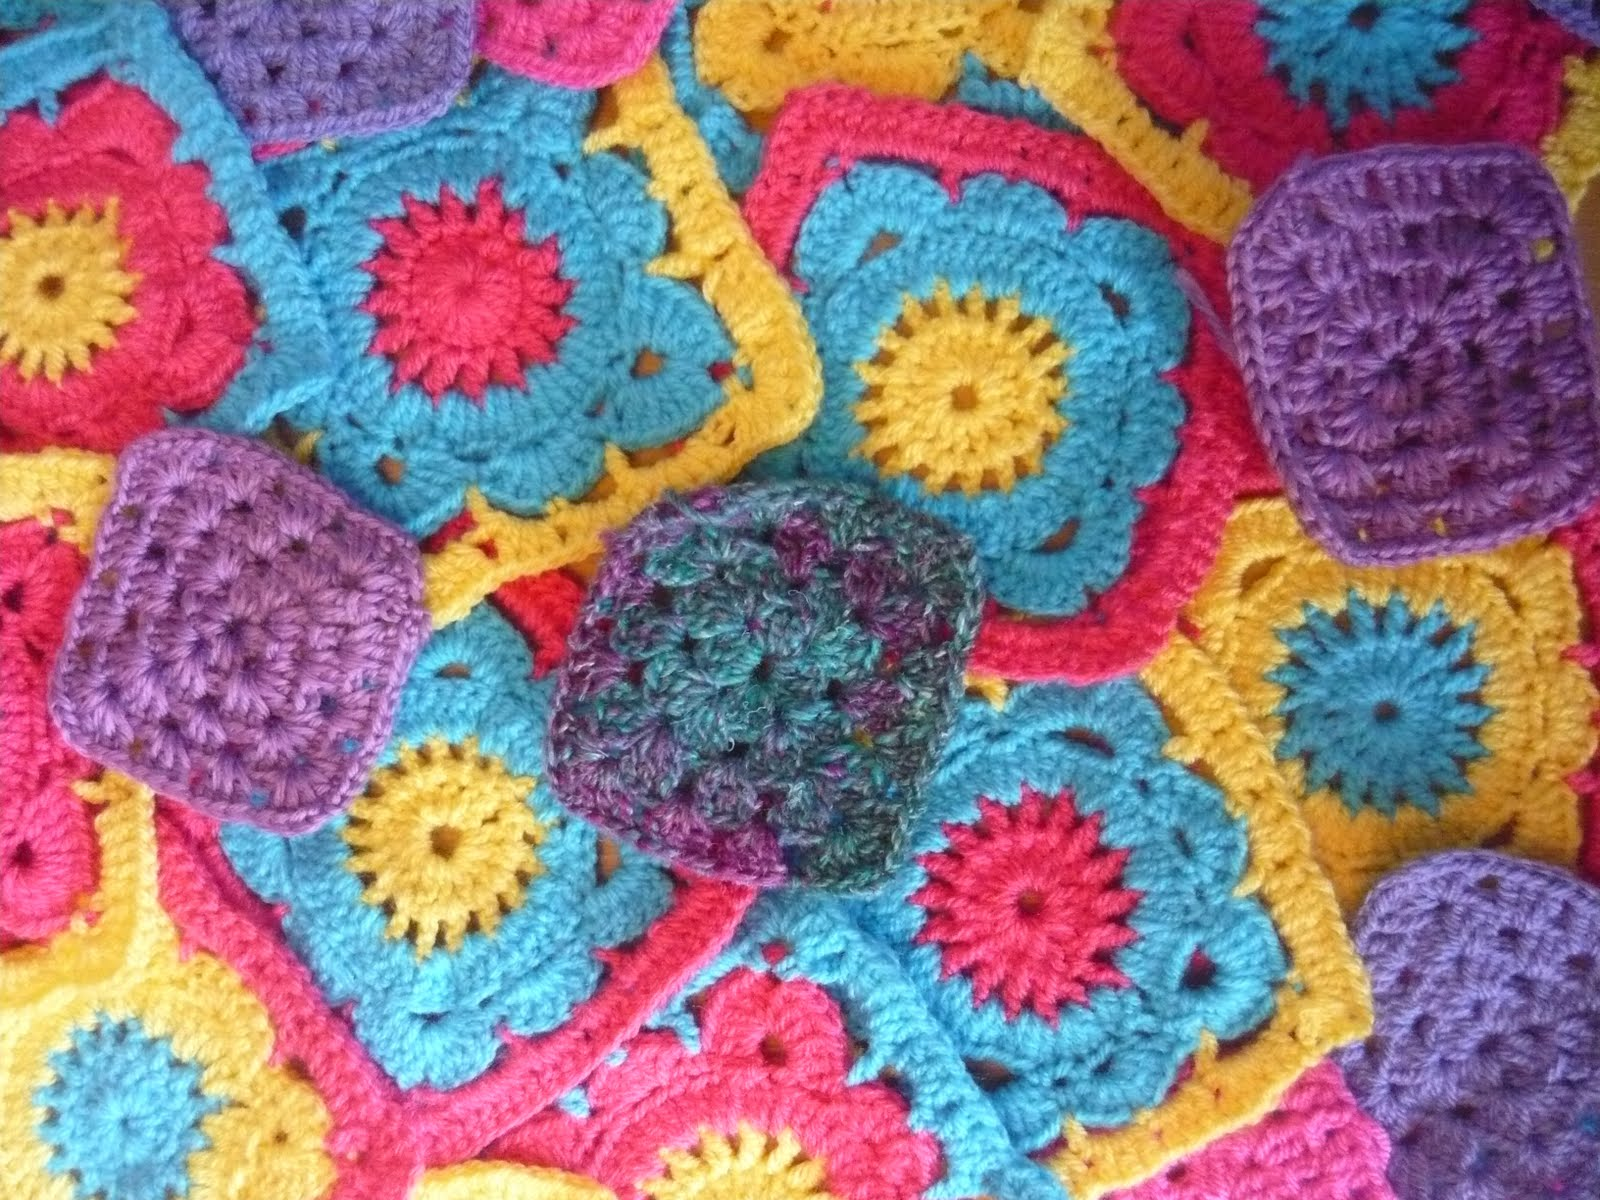 How To Crochet Granny Squares : The Gingerbread Bunny: How to crochet a Granny Square!